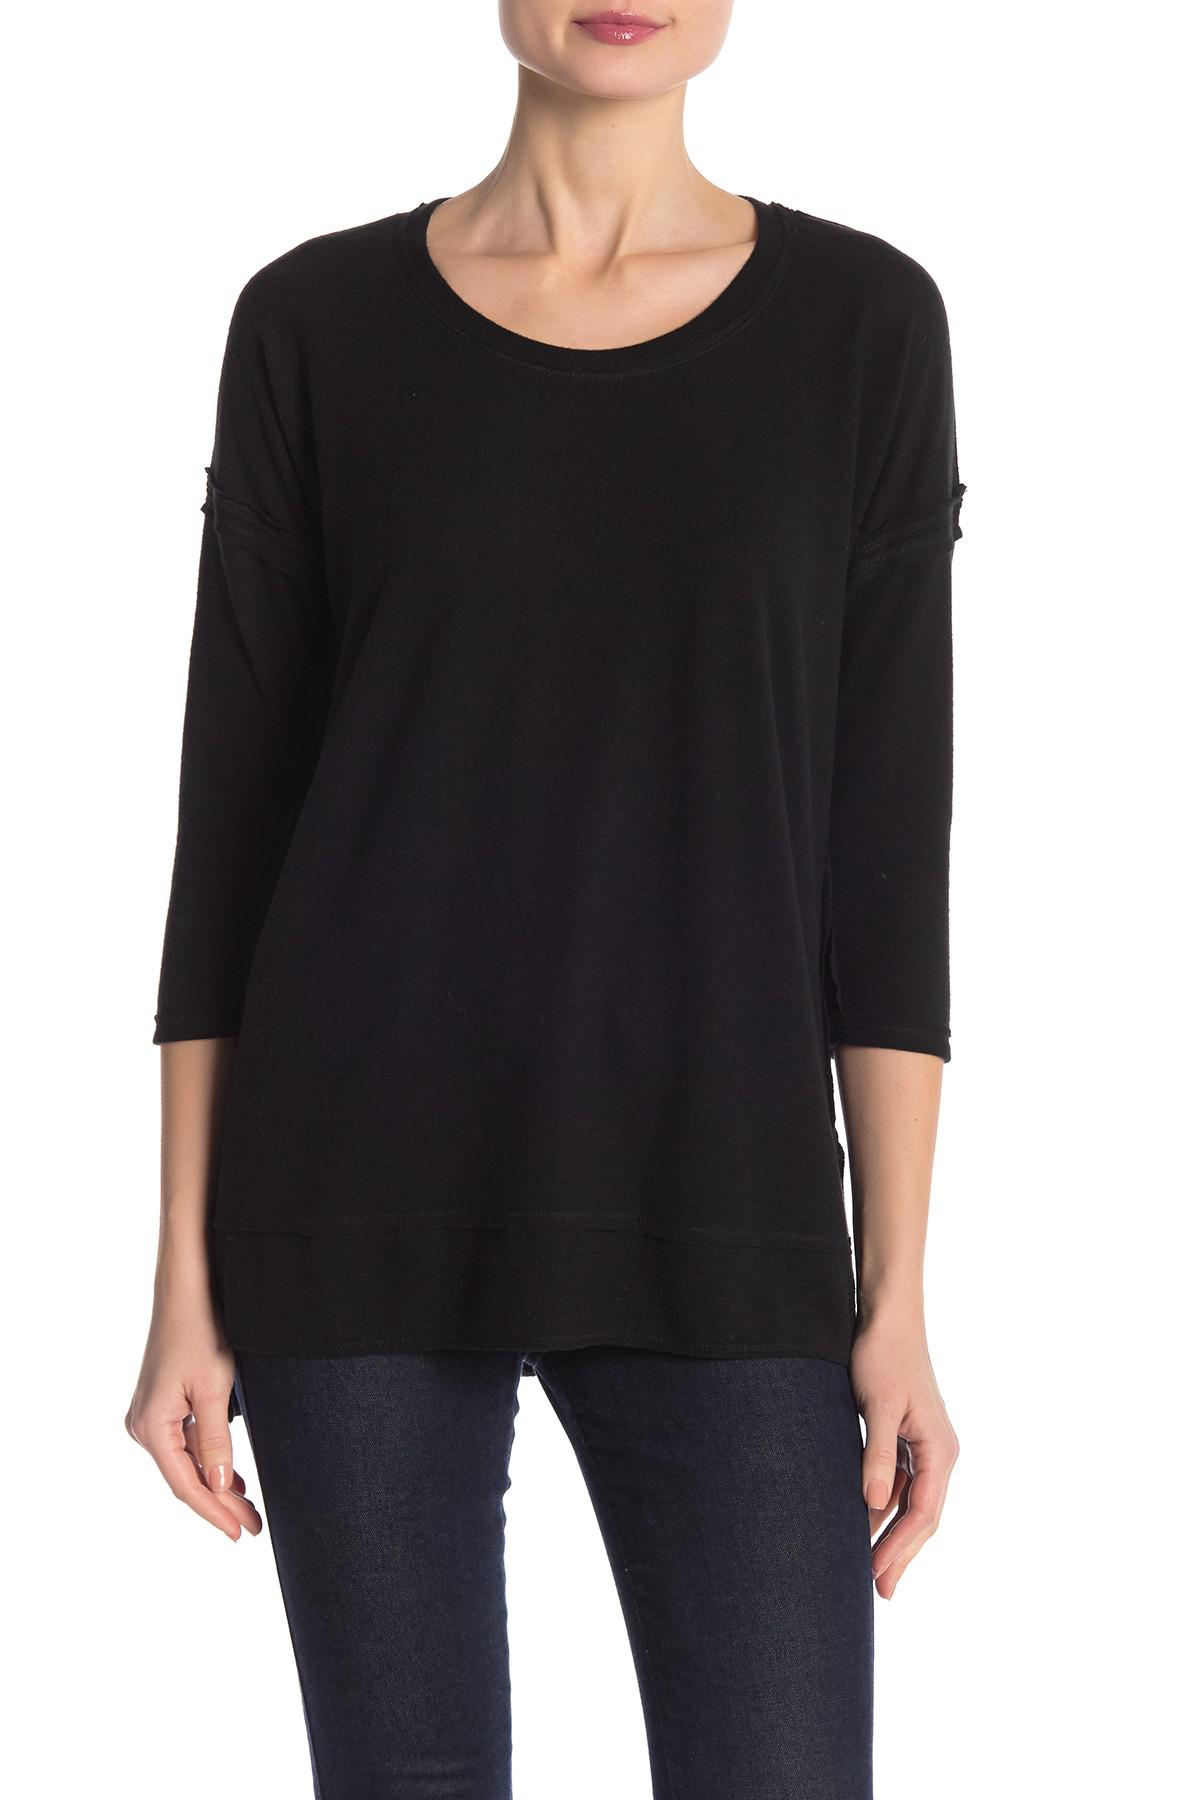 d6502d64e3d Lyst - Heather By Bordeaux Unbrushed Hacci 3/4 Sleeve Tee in Black